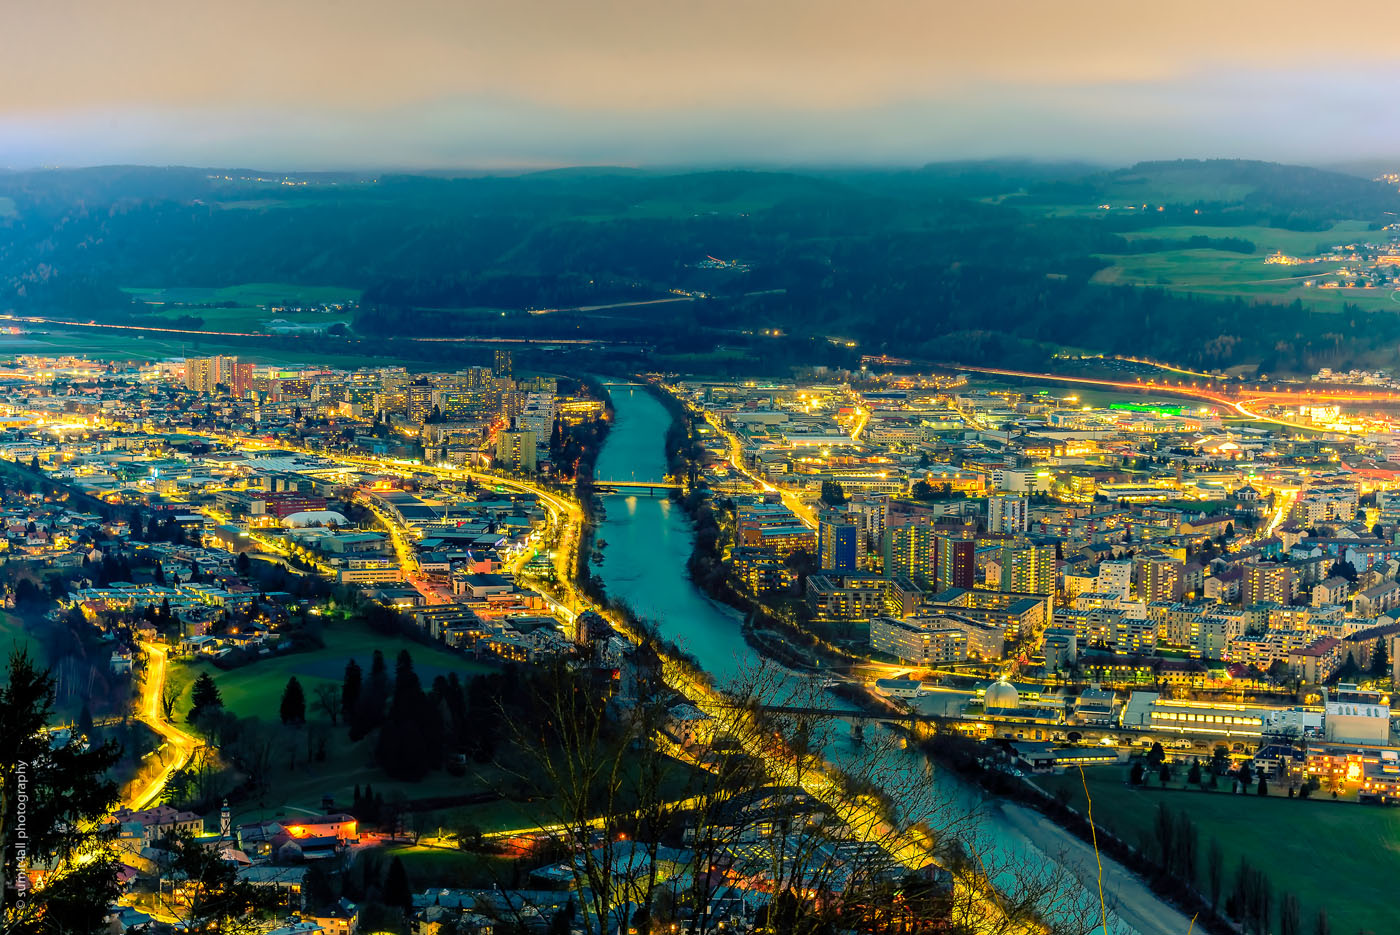 The city of Innsbruck after sunset